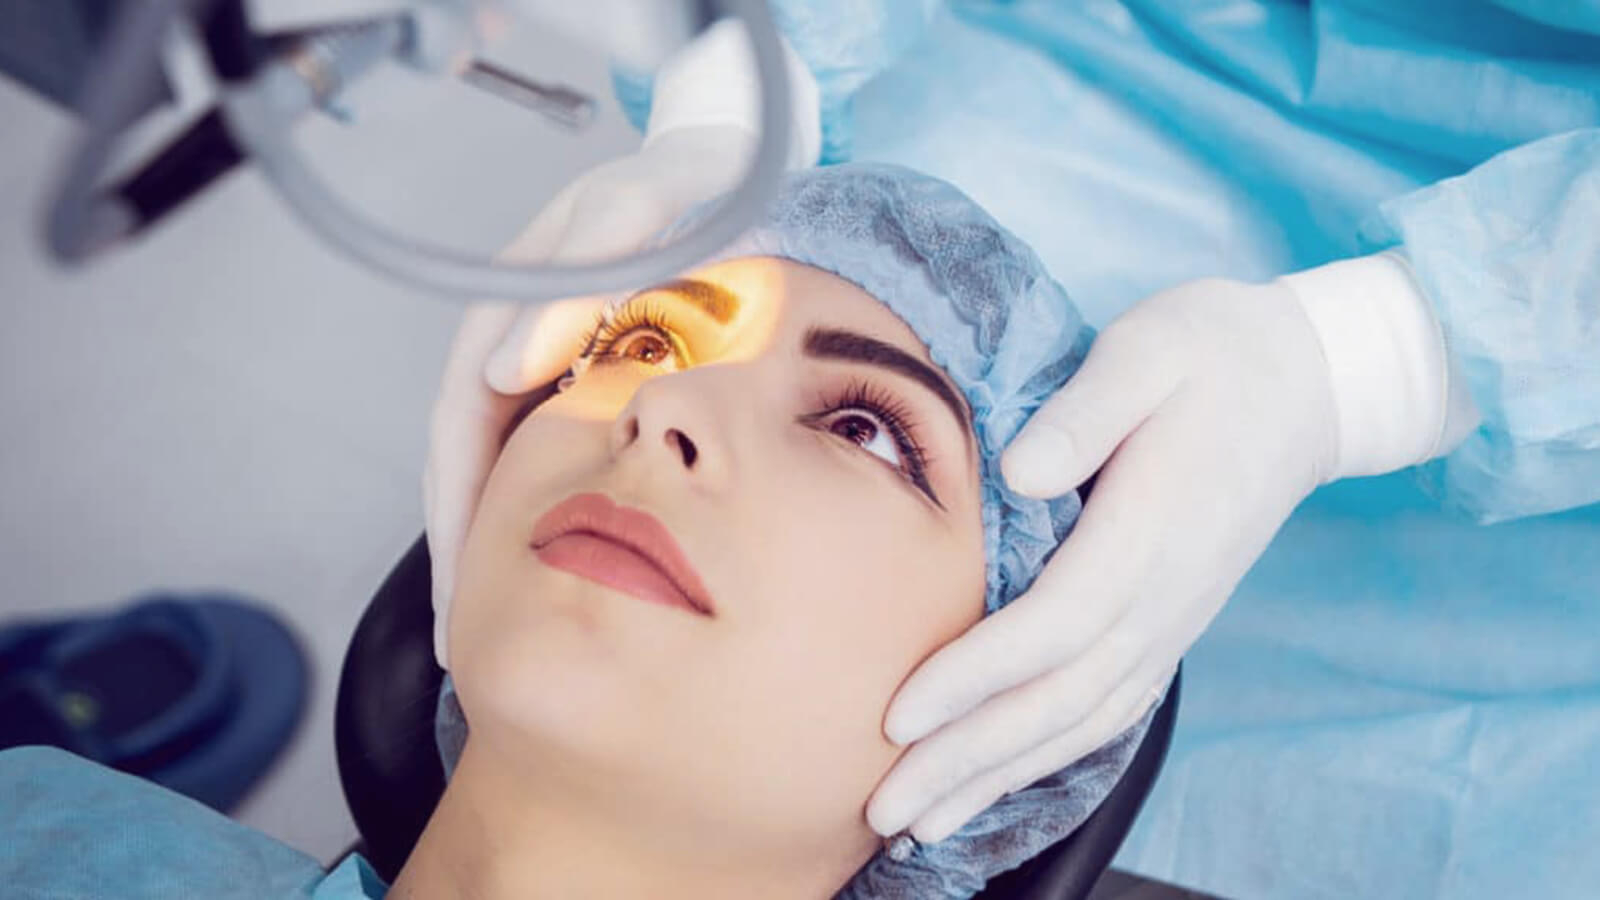 Eye Accidents or Surgery